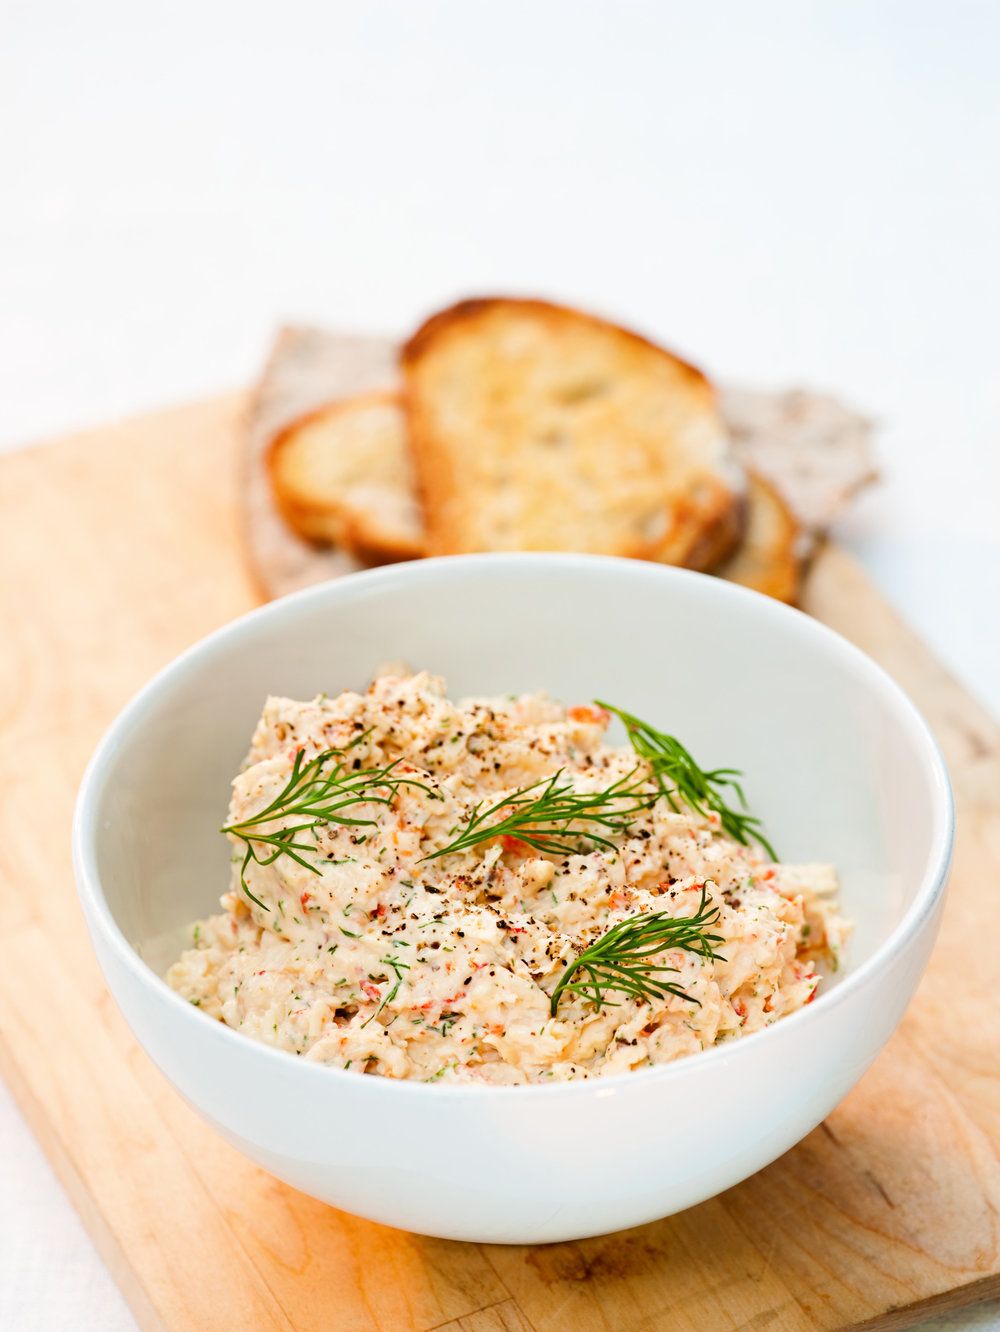 Cheese, crayfish and cumin appetizer - Photo: Jakob Fridholm / imagebank.sweden.se